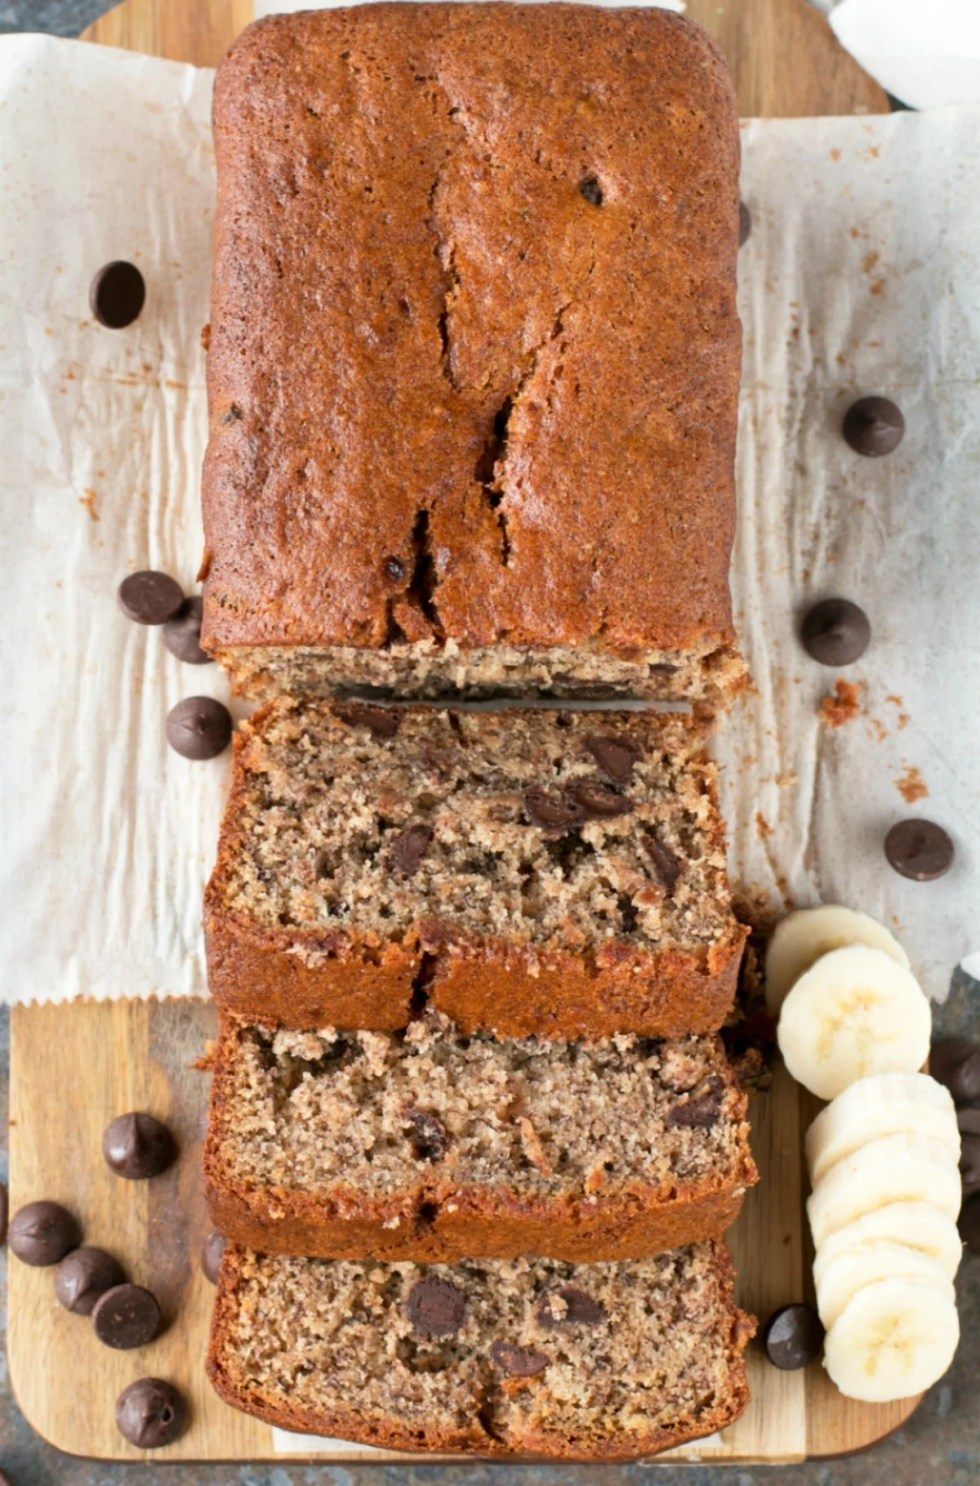 Overhead picture of chocolate chip banana bread sliced on cutting board